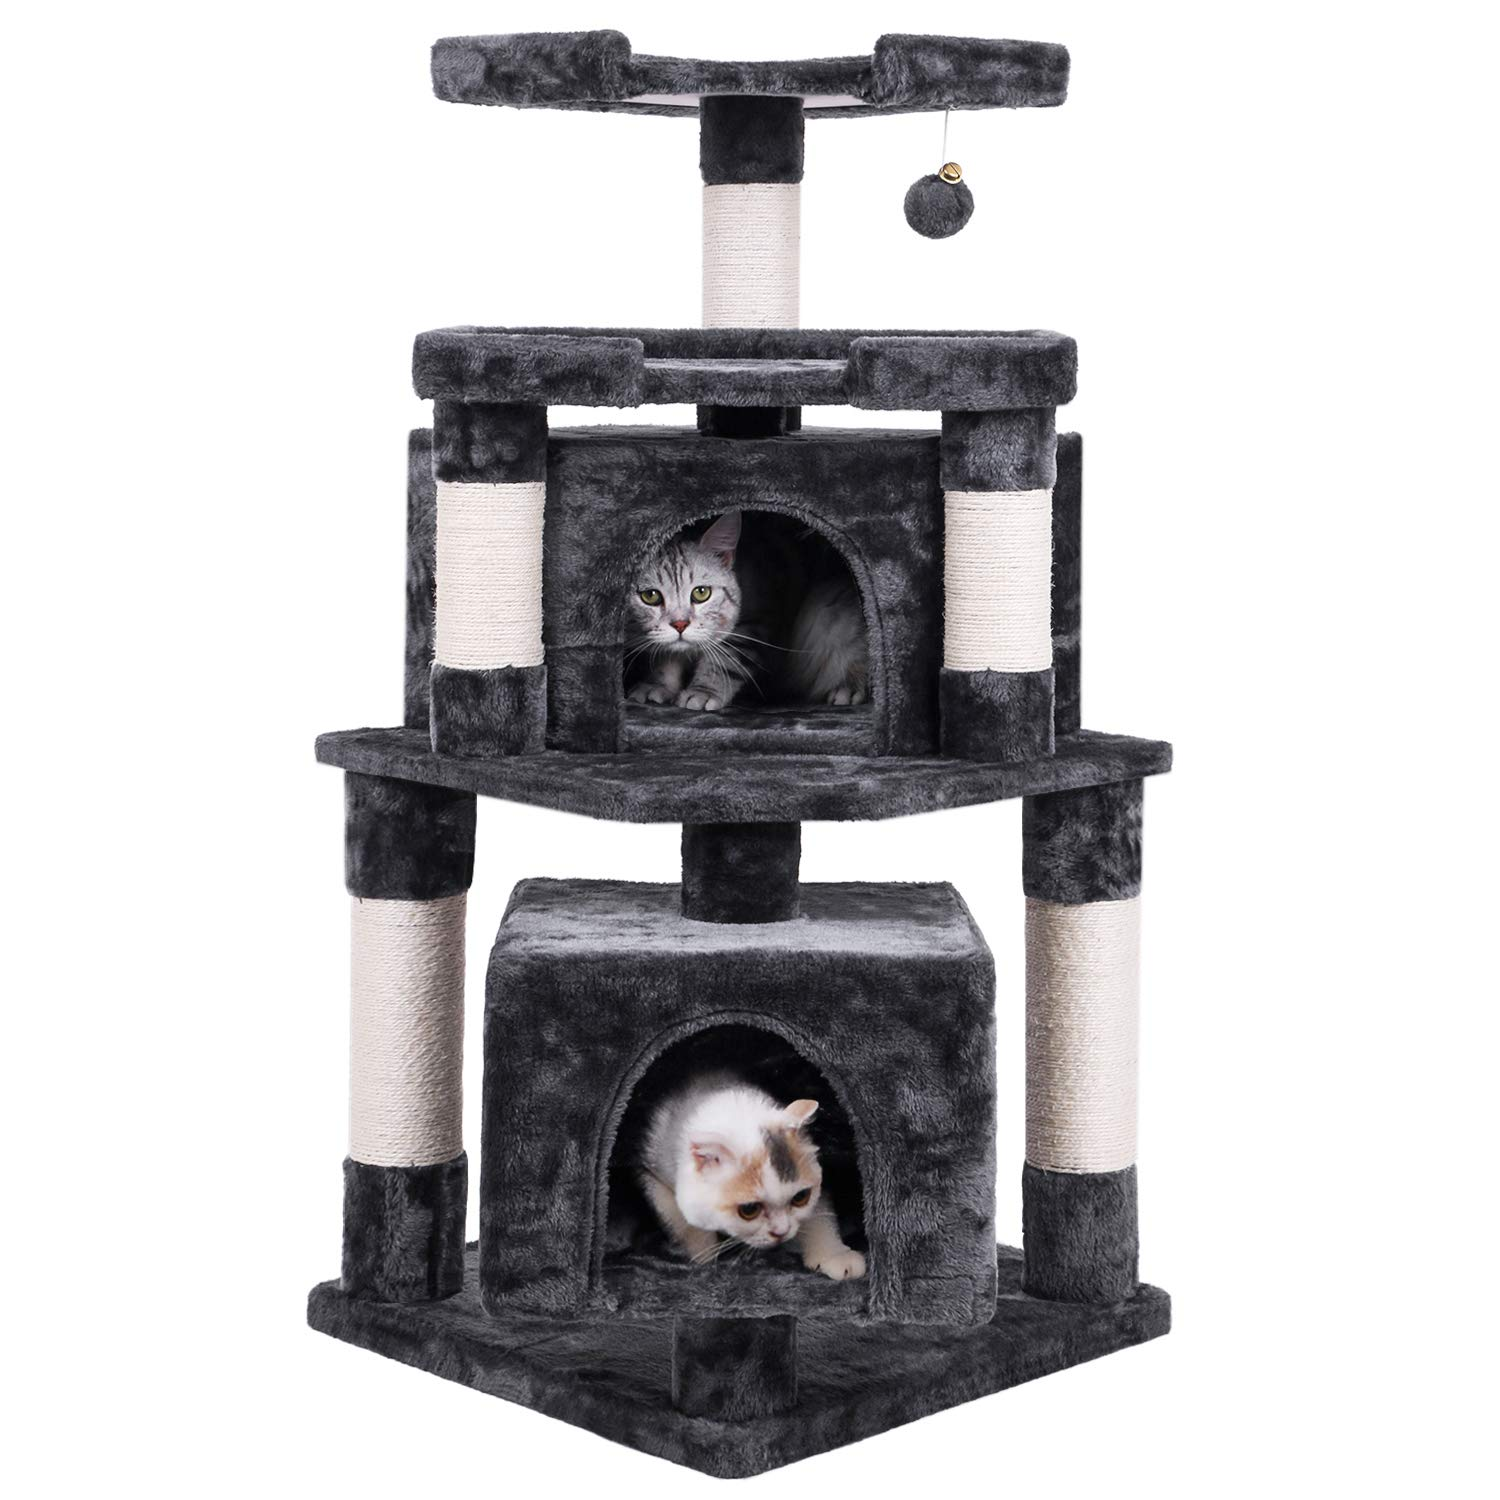 BEWISHOME Cat Tree Condo with Sisal Scratching Posts Perches Houses, Cat Tower Kitty Activity Center Kitten Play House Furniture Grey MMJ04B